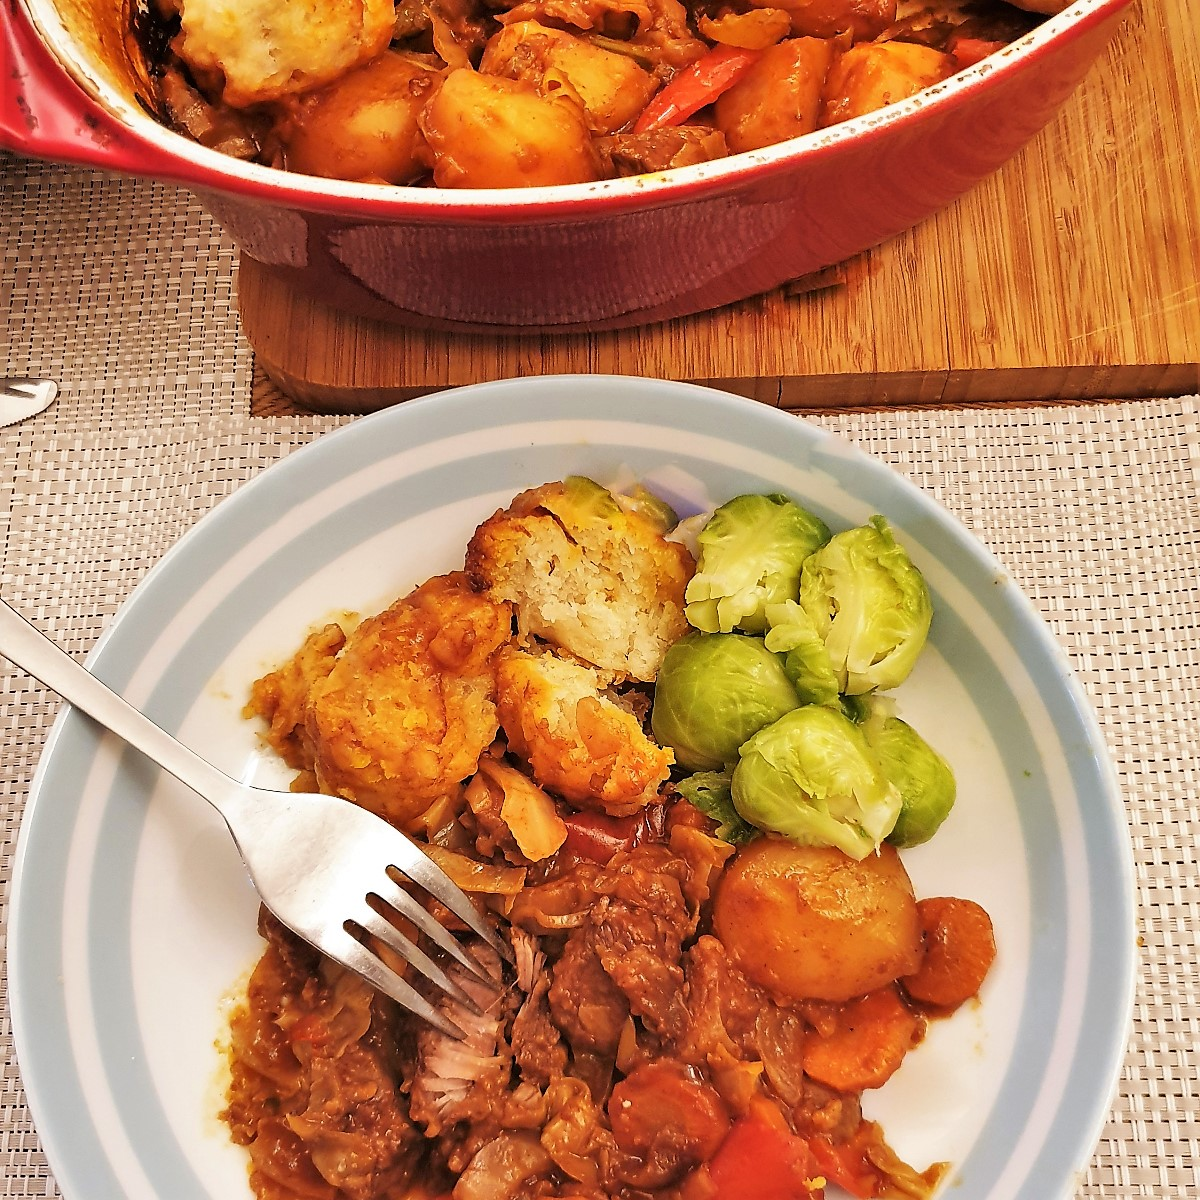 A dish of beef casserole and suet dumplings with a side helping of brussels sprouts.